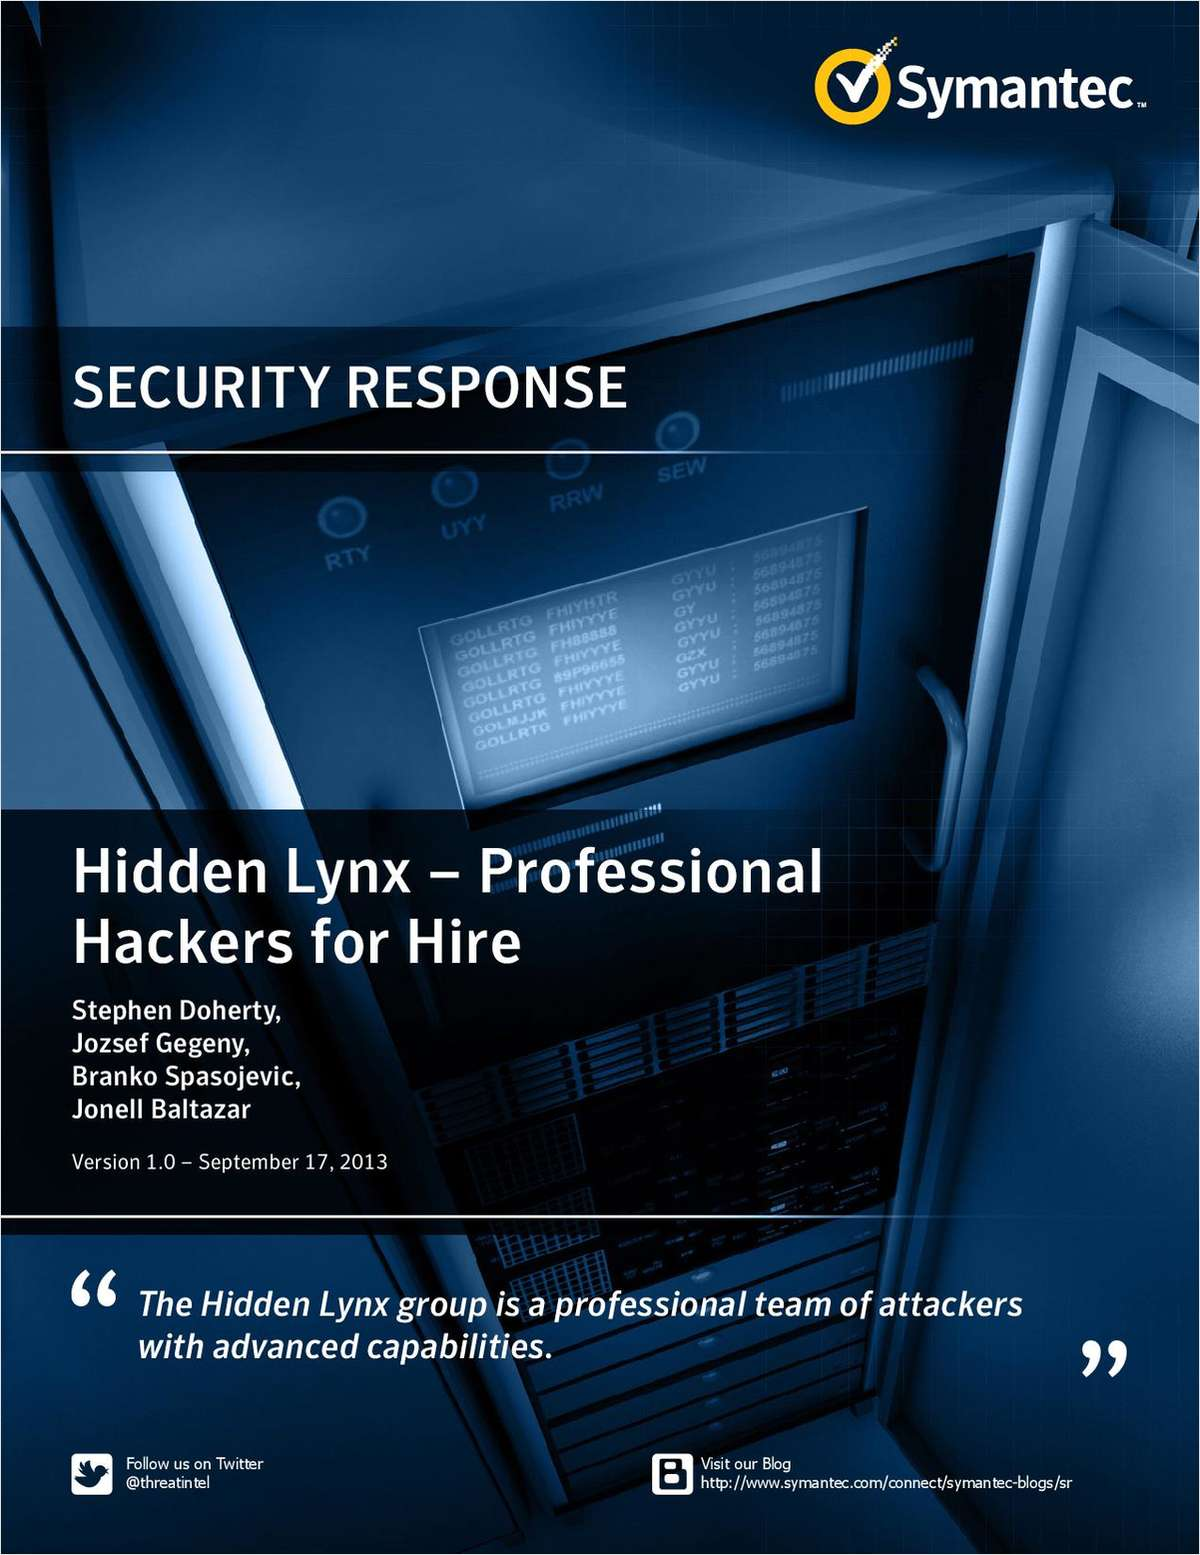 Hidden Lynx – Professional Hackers for Hire